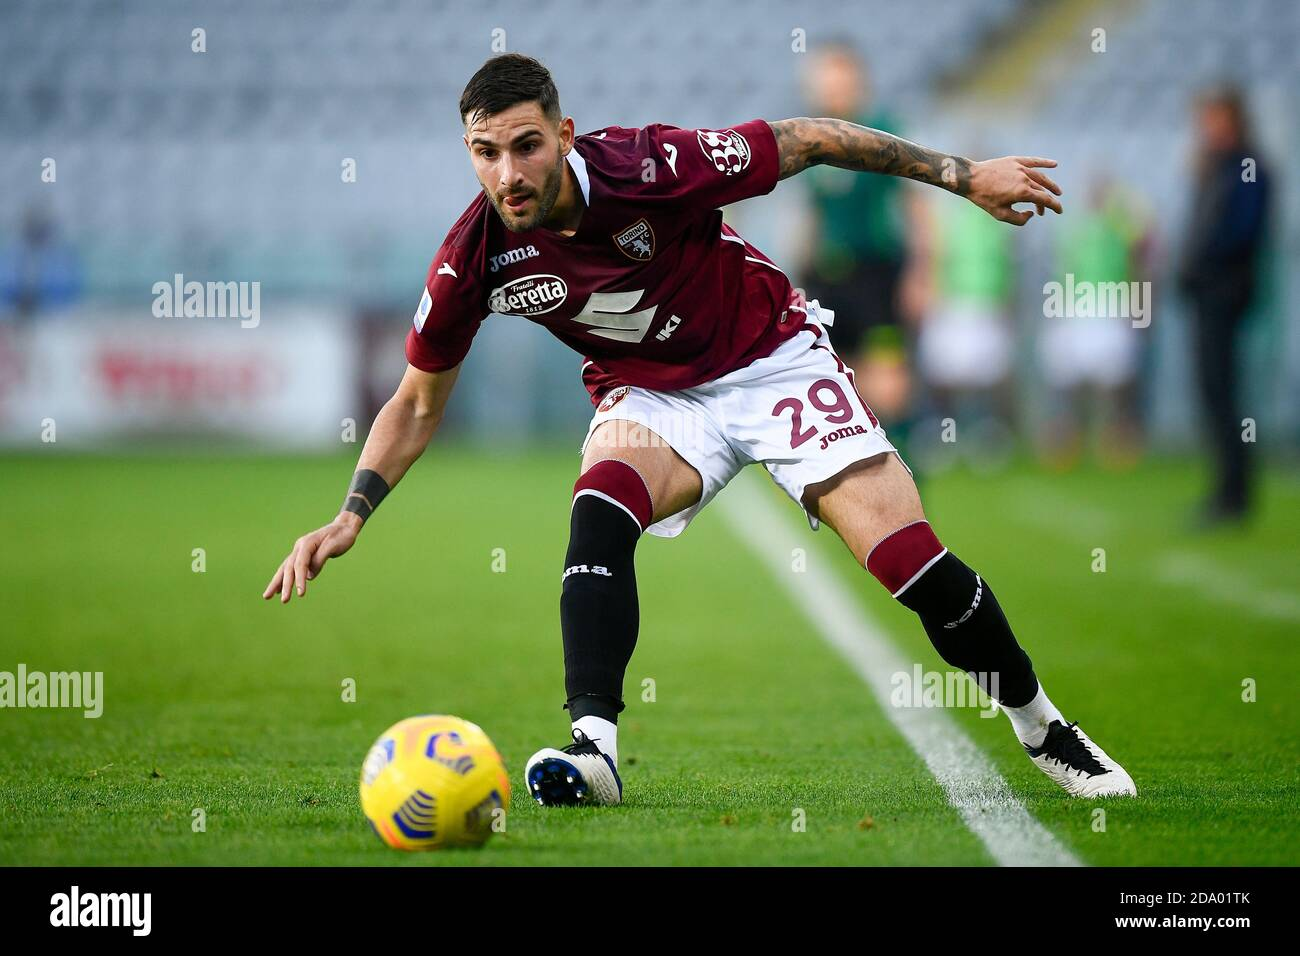 Turin, Italy. 08th Nov, 2020. TURIN, ITALY - November 08, 2020: Nicola Murru of Torino FC in action during the Serie A football match between Torino FC and FC Crotone. (Photo by Nicolò Campo/Sipa USA) Credit: Sipa USA/Alamy Live News Stock Photo